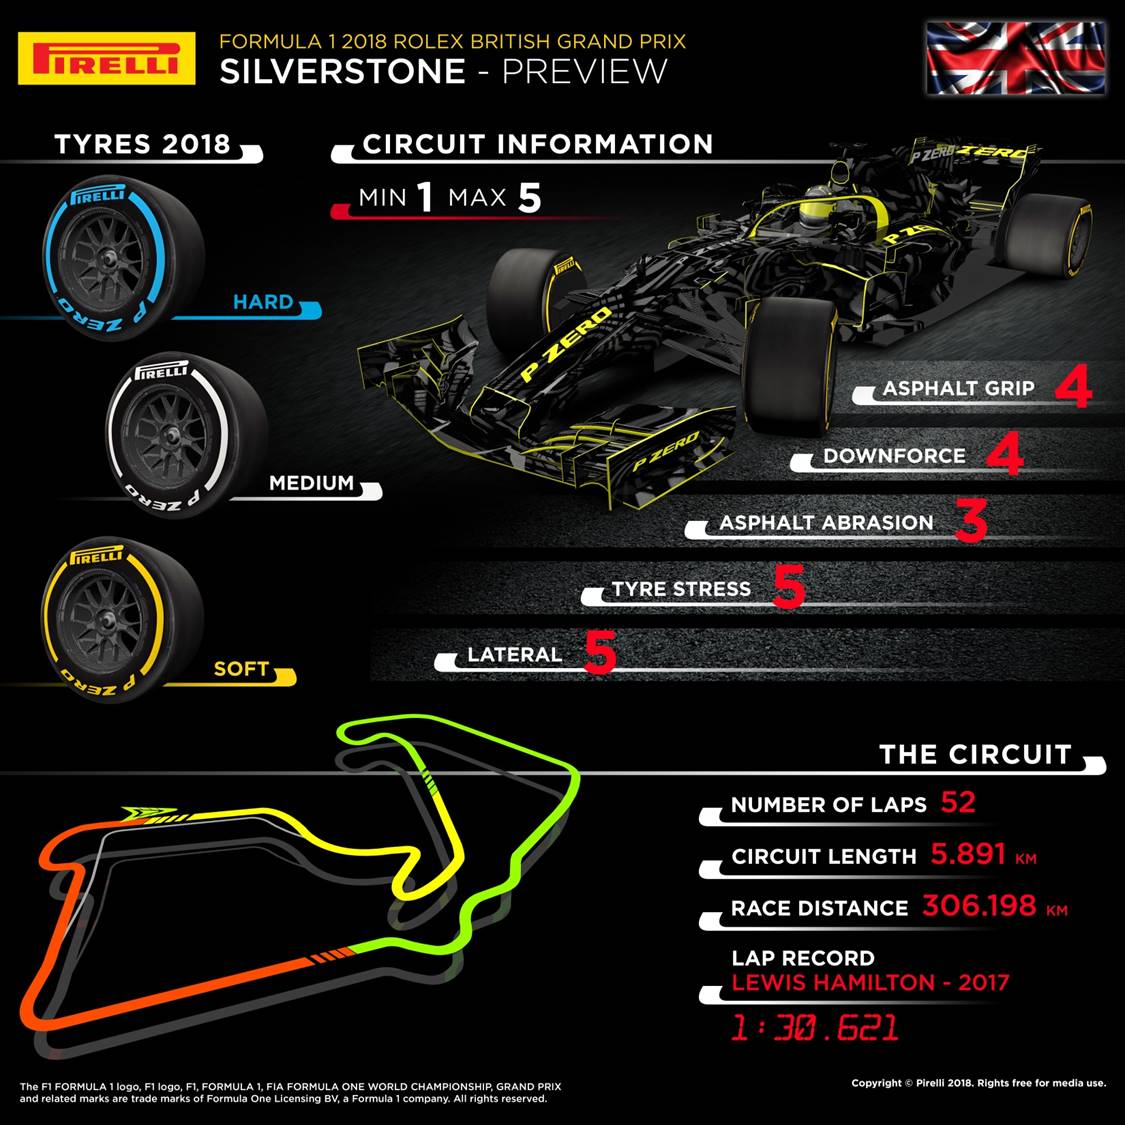 2018 F1 Summary Race Reports Mexican Grand Prix Ferrari Formula 1 Engine Diagram Yet This Time Sebastian Vettel And Won On That Basis It Can Win Anywhere Maybe Its The Team To Beat Year